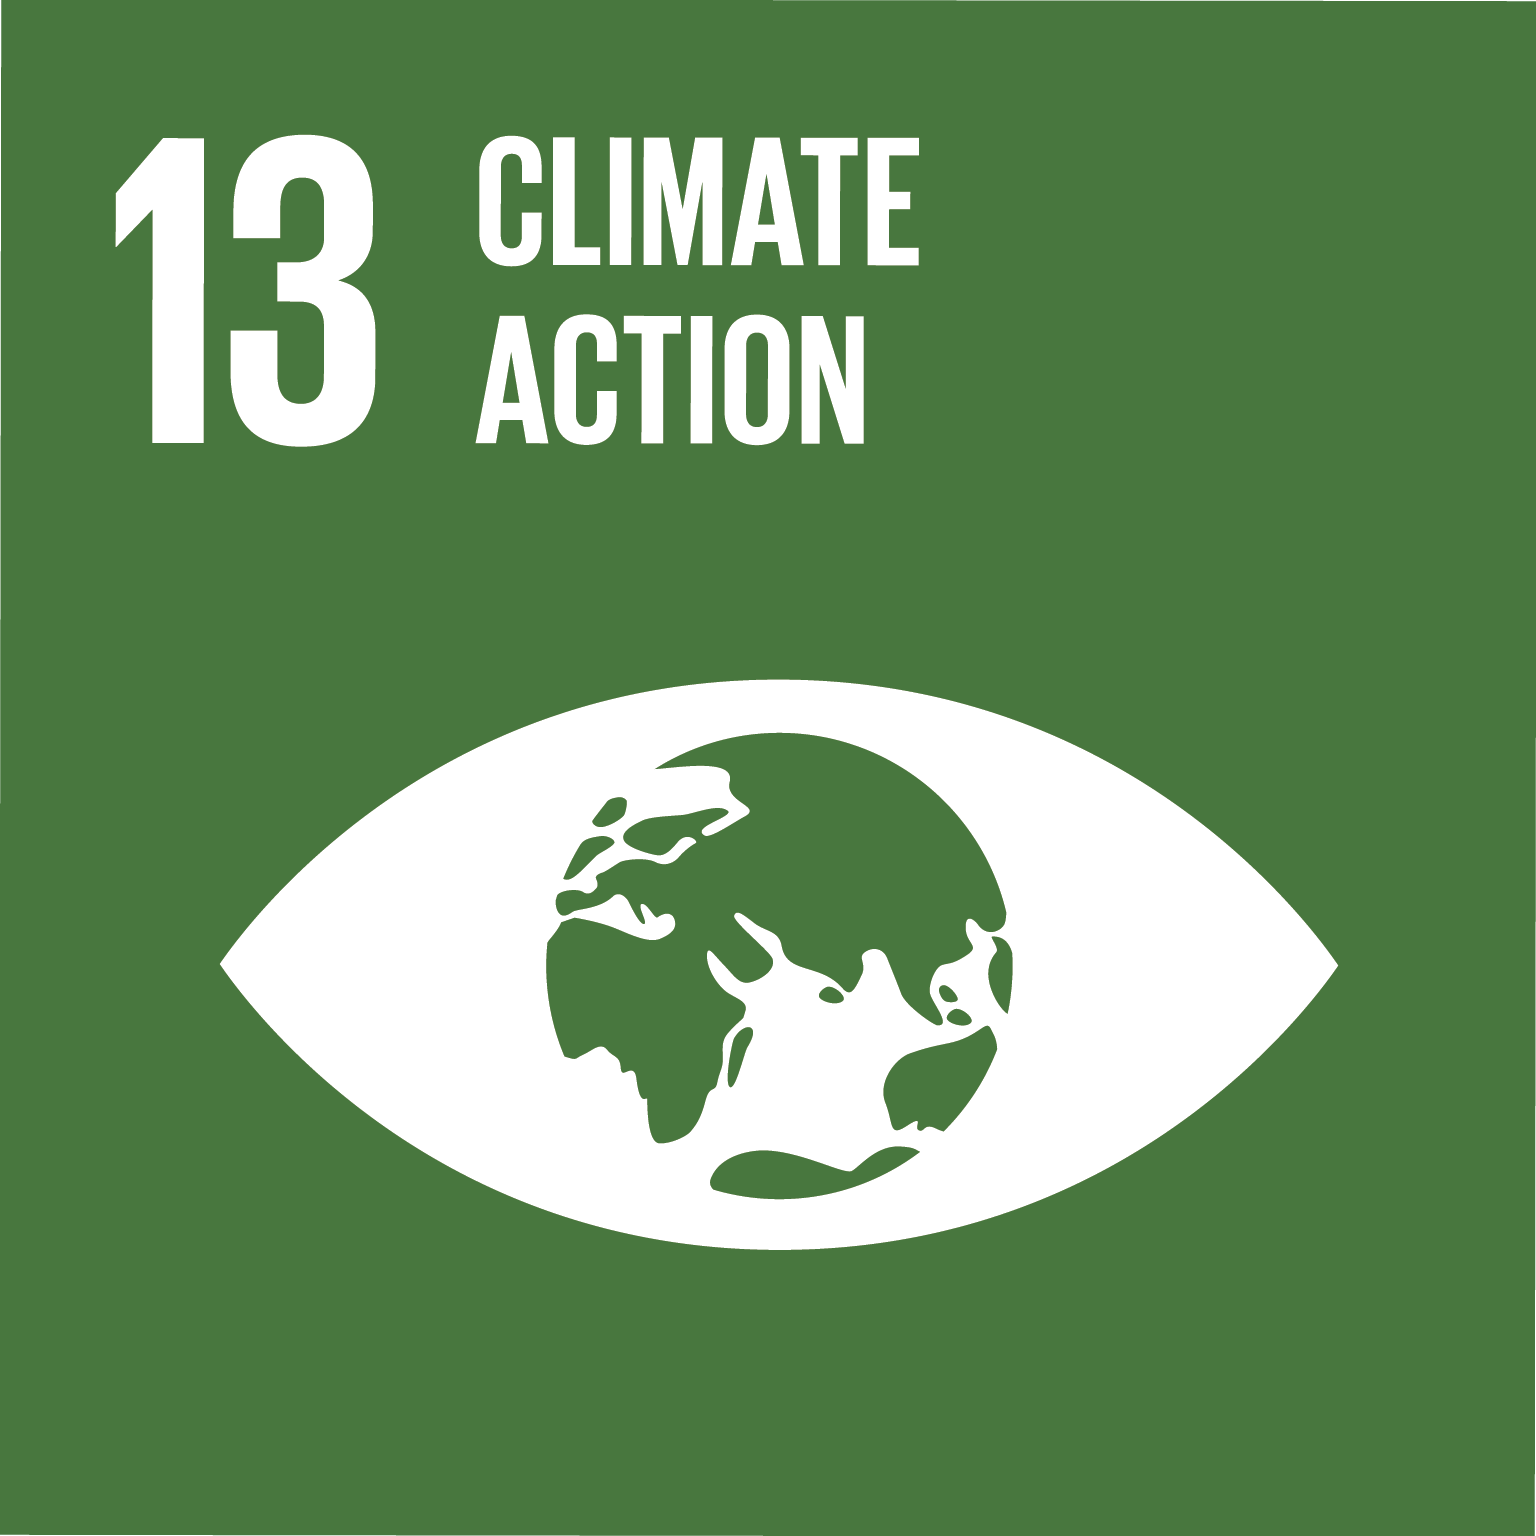 Representative image of SDG climate action